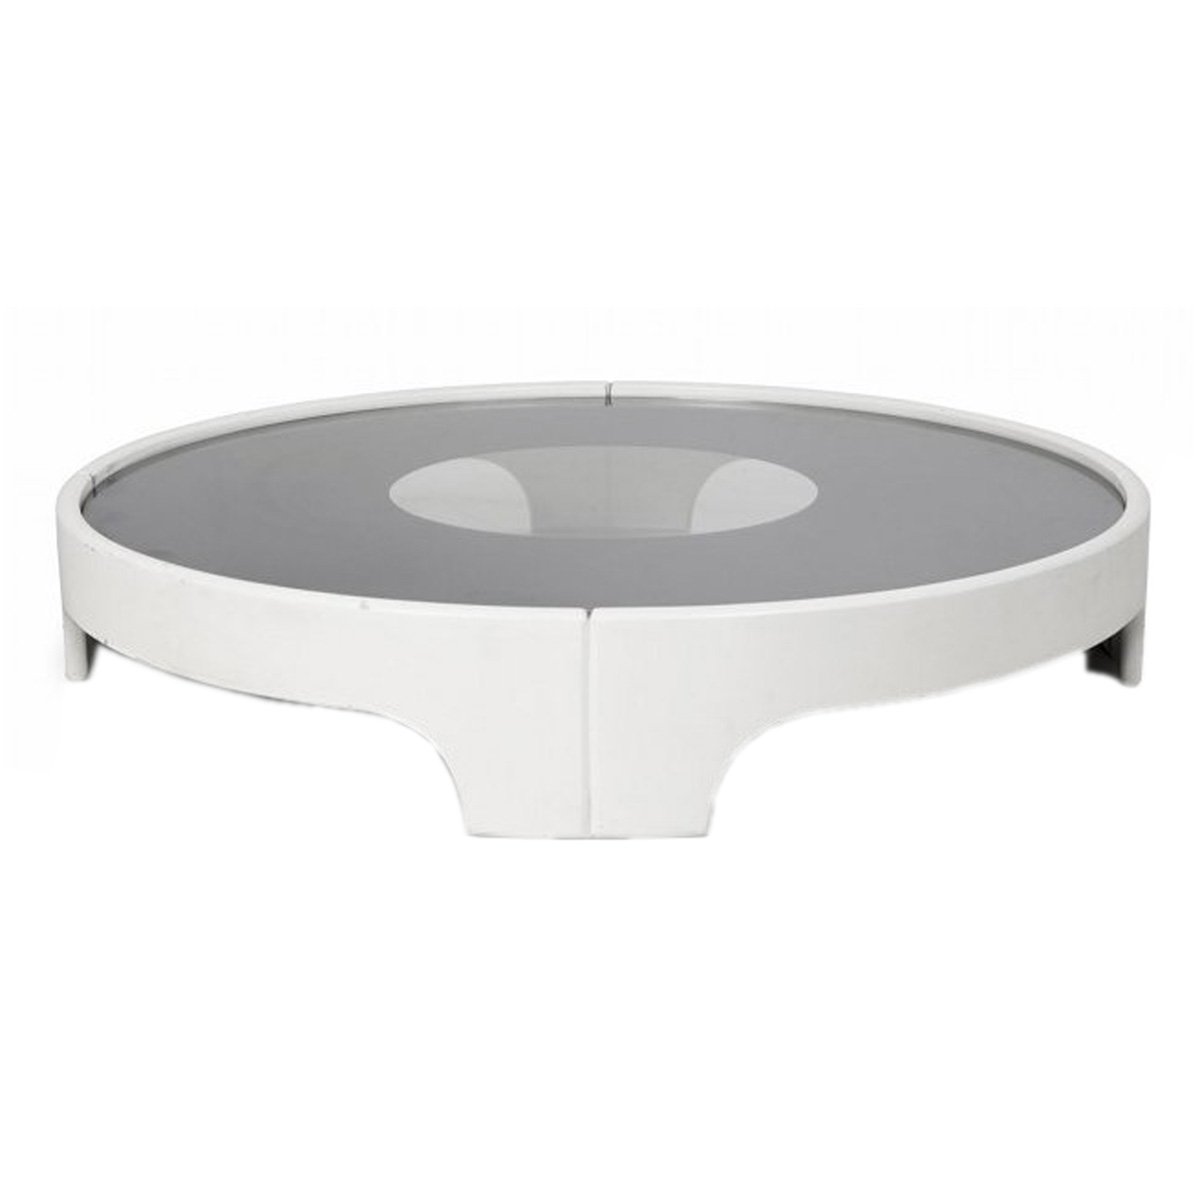 - Round Coffee Table By Toti Agnoli – The FM Gallery